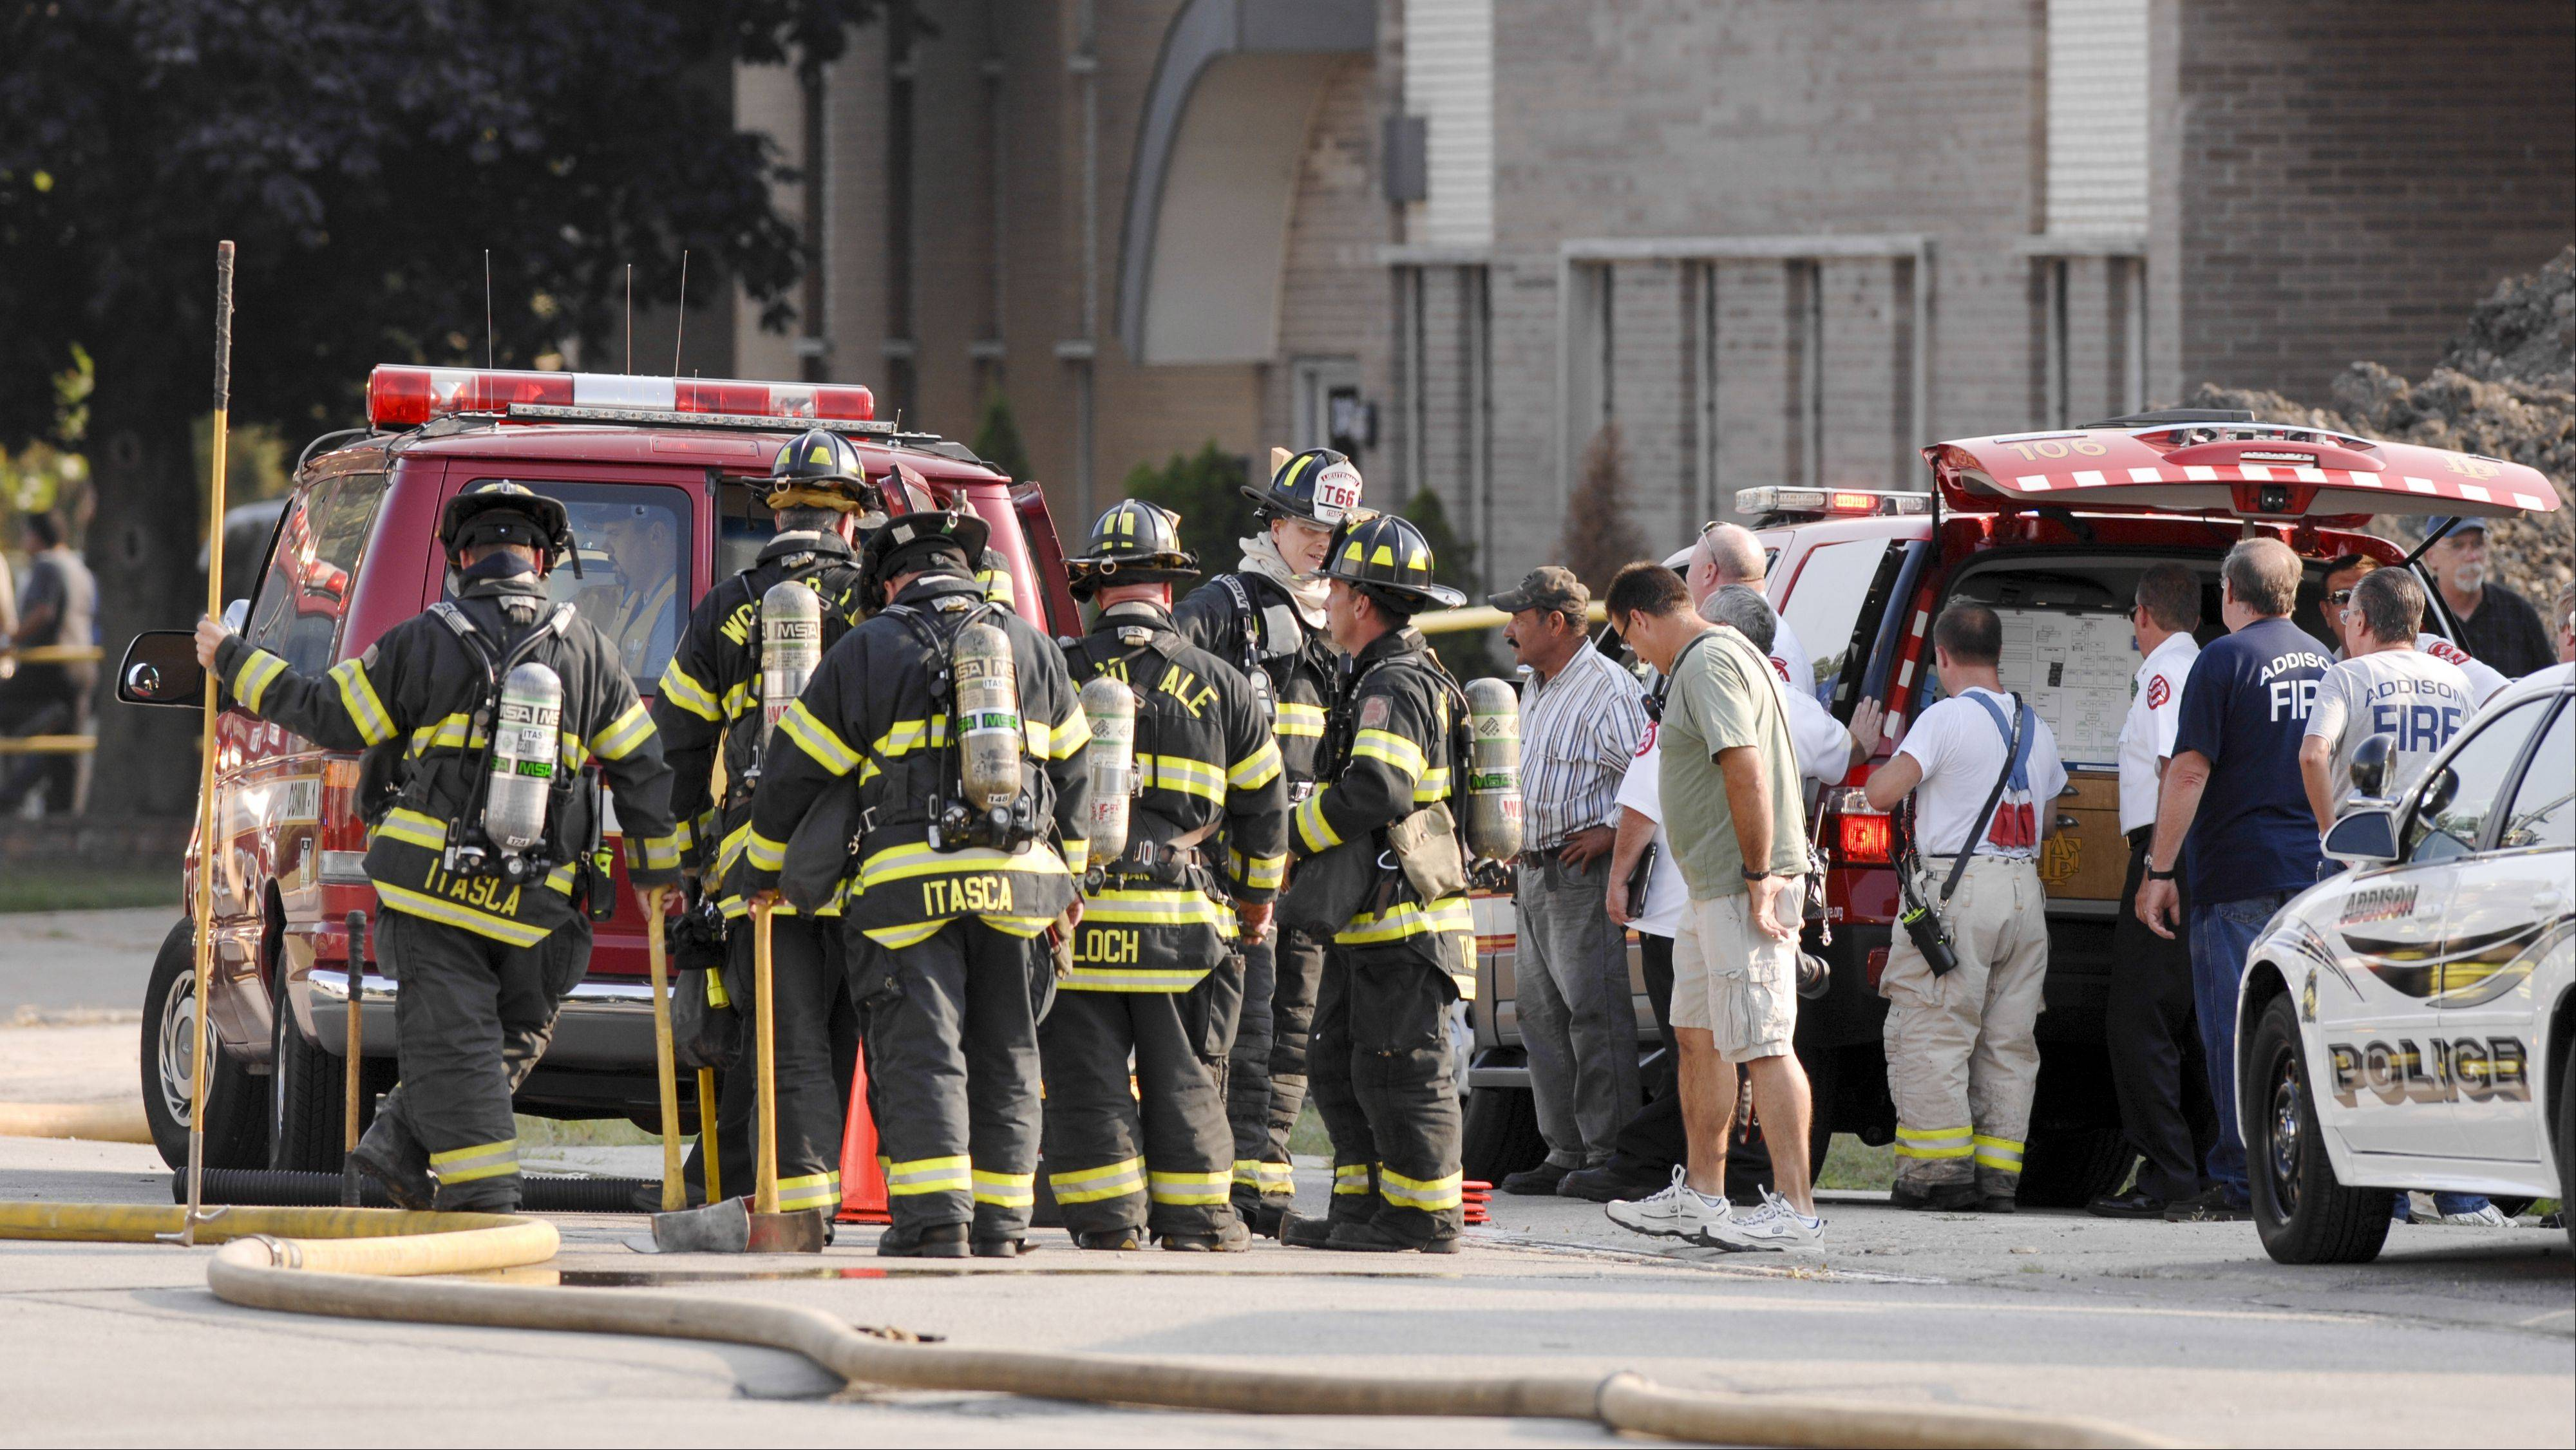 Firefighters responded to a blaze at 1045 Westgate St. in Addison about 4:30 p.m. Wednesday.